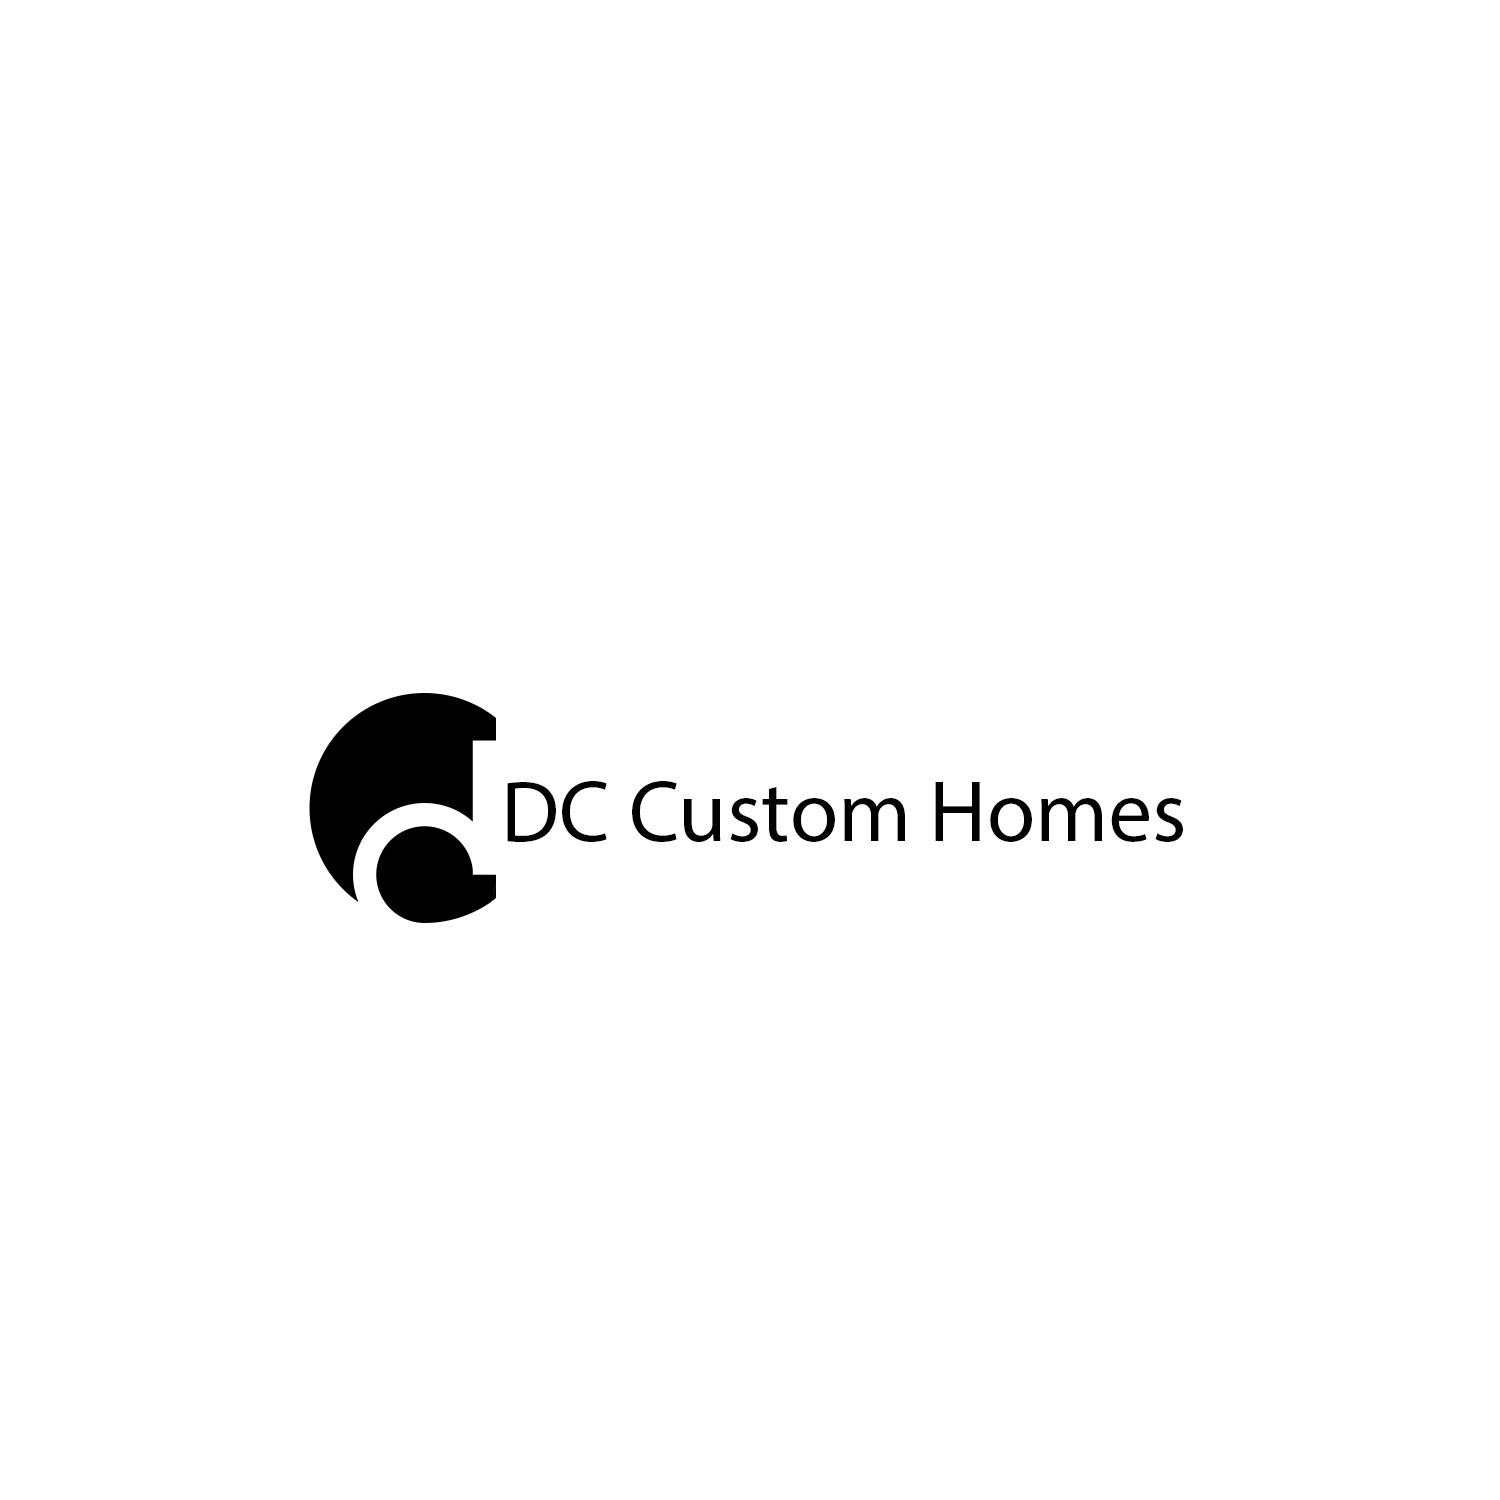 Logo Design by Private User - Entry No. 143 in the Logo Design Contest Creative Logo Design for DC Custom Homes.